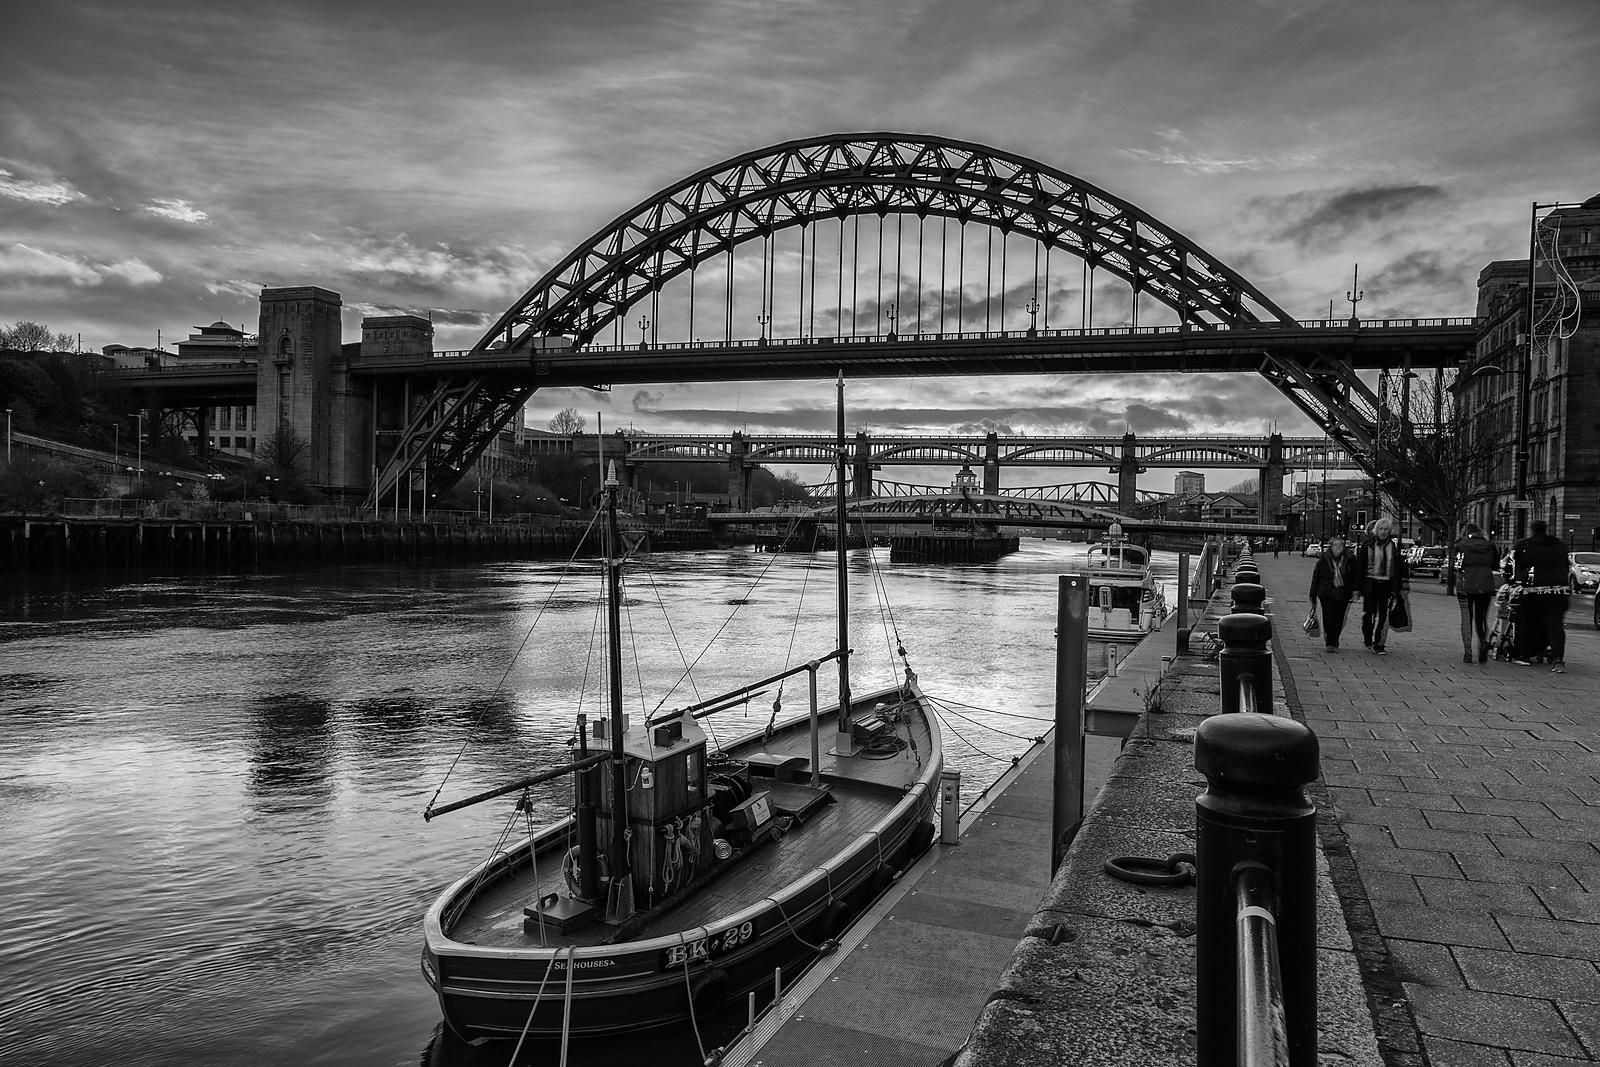 Moored on the Tyne